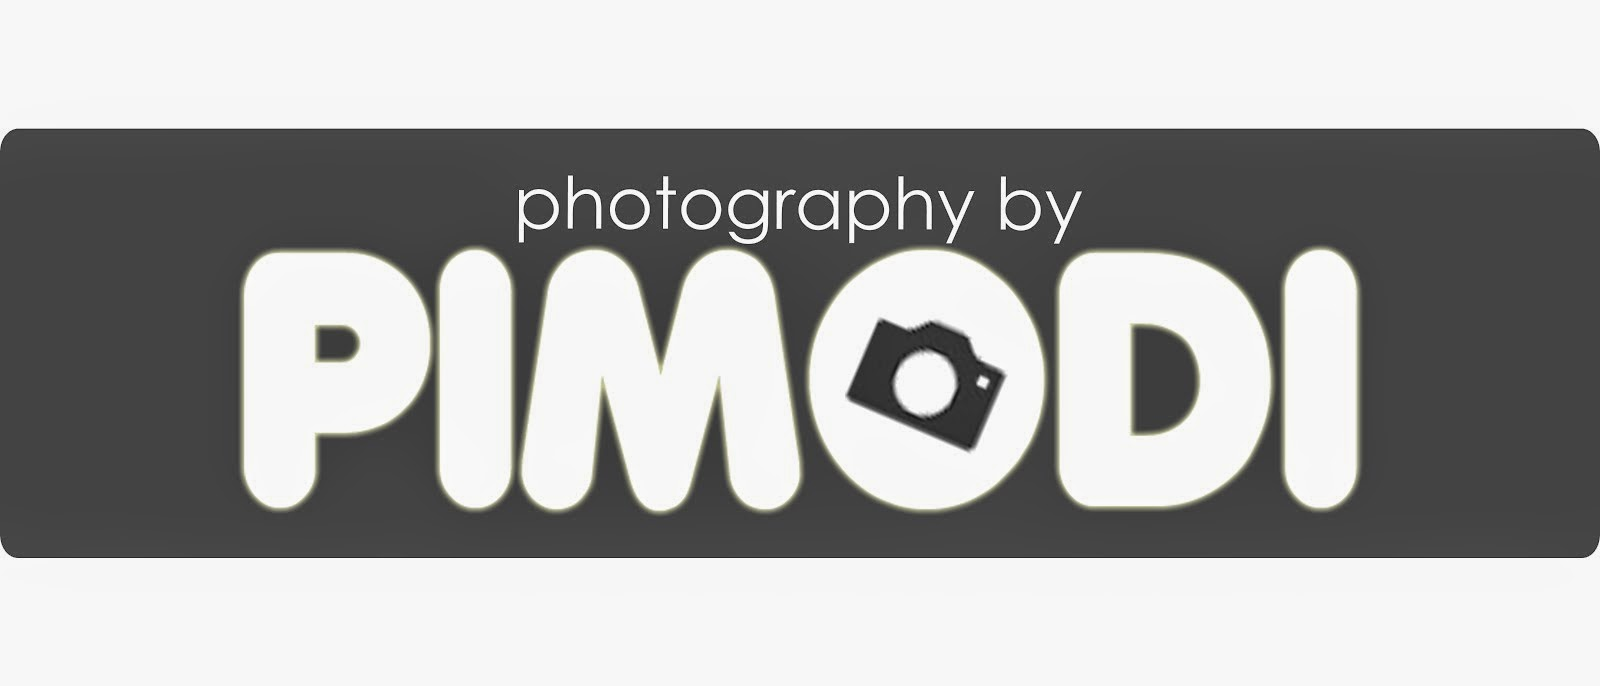 Pimodi Photography